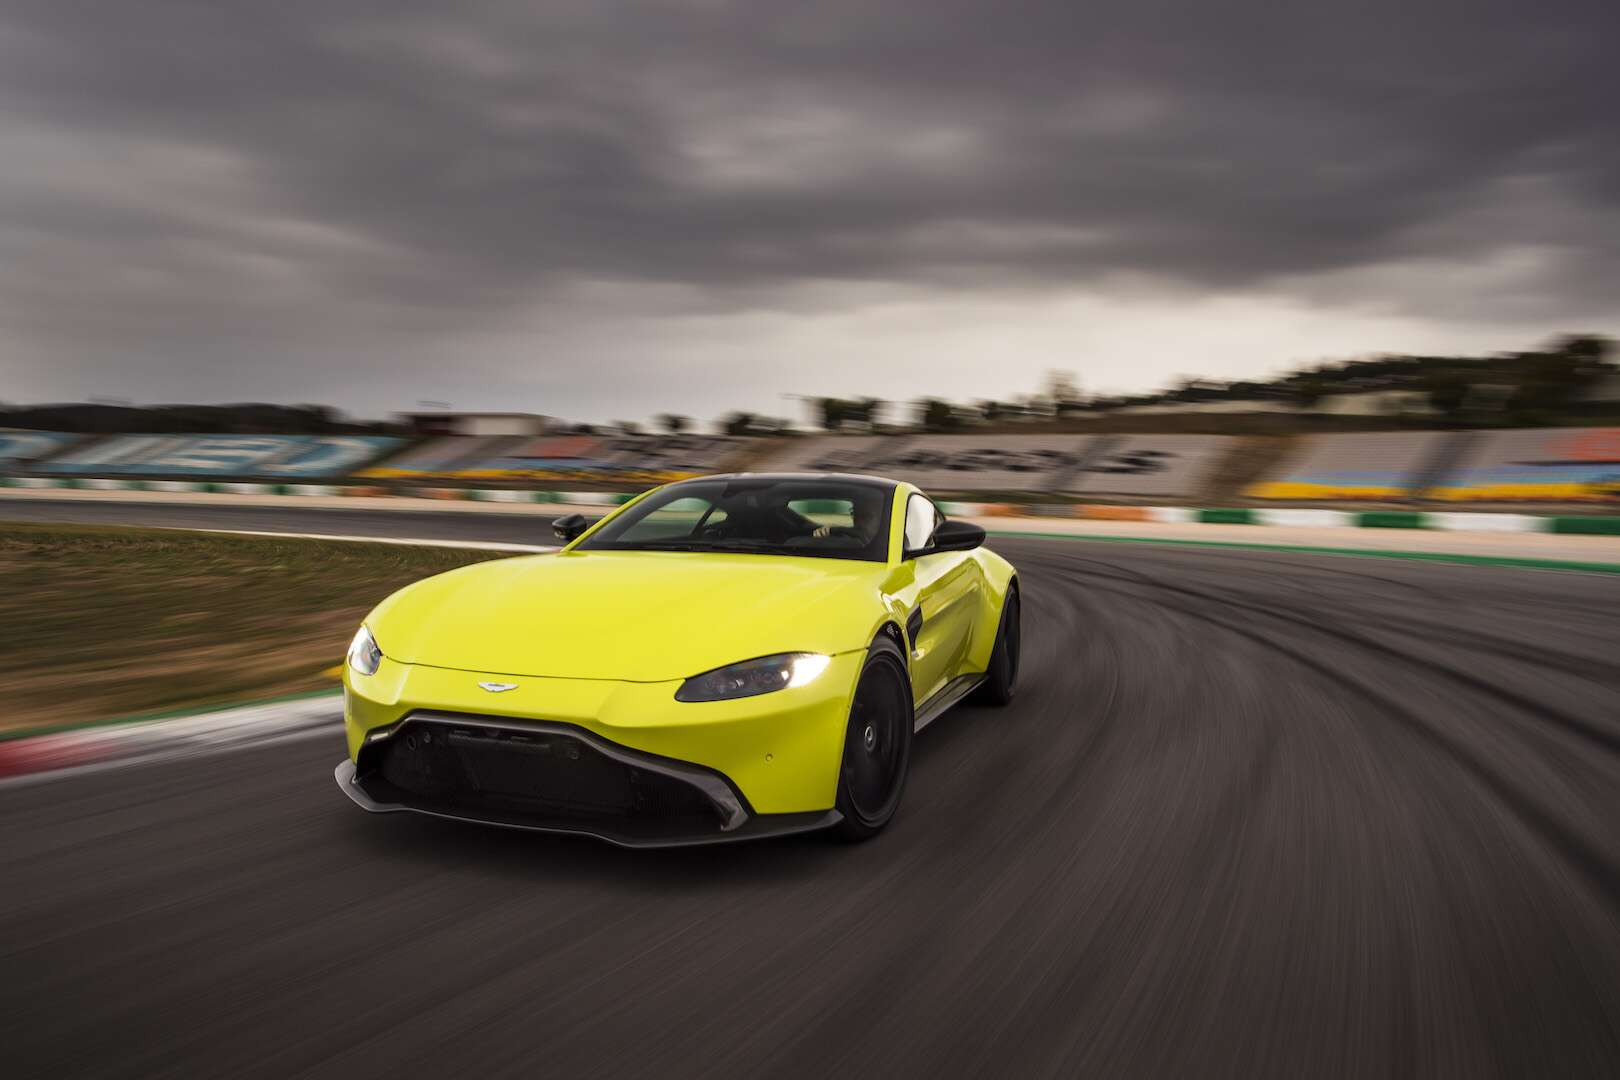 2019 Aston Martin Vantage First Drive Review This 195 Mph Predator